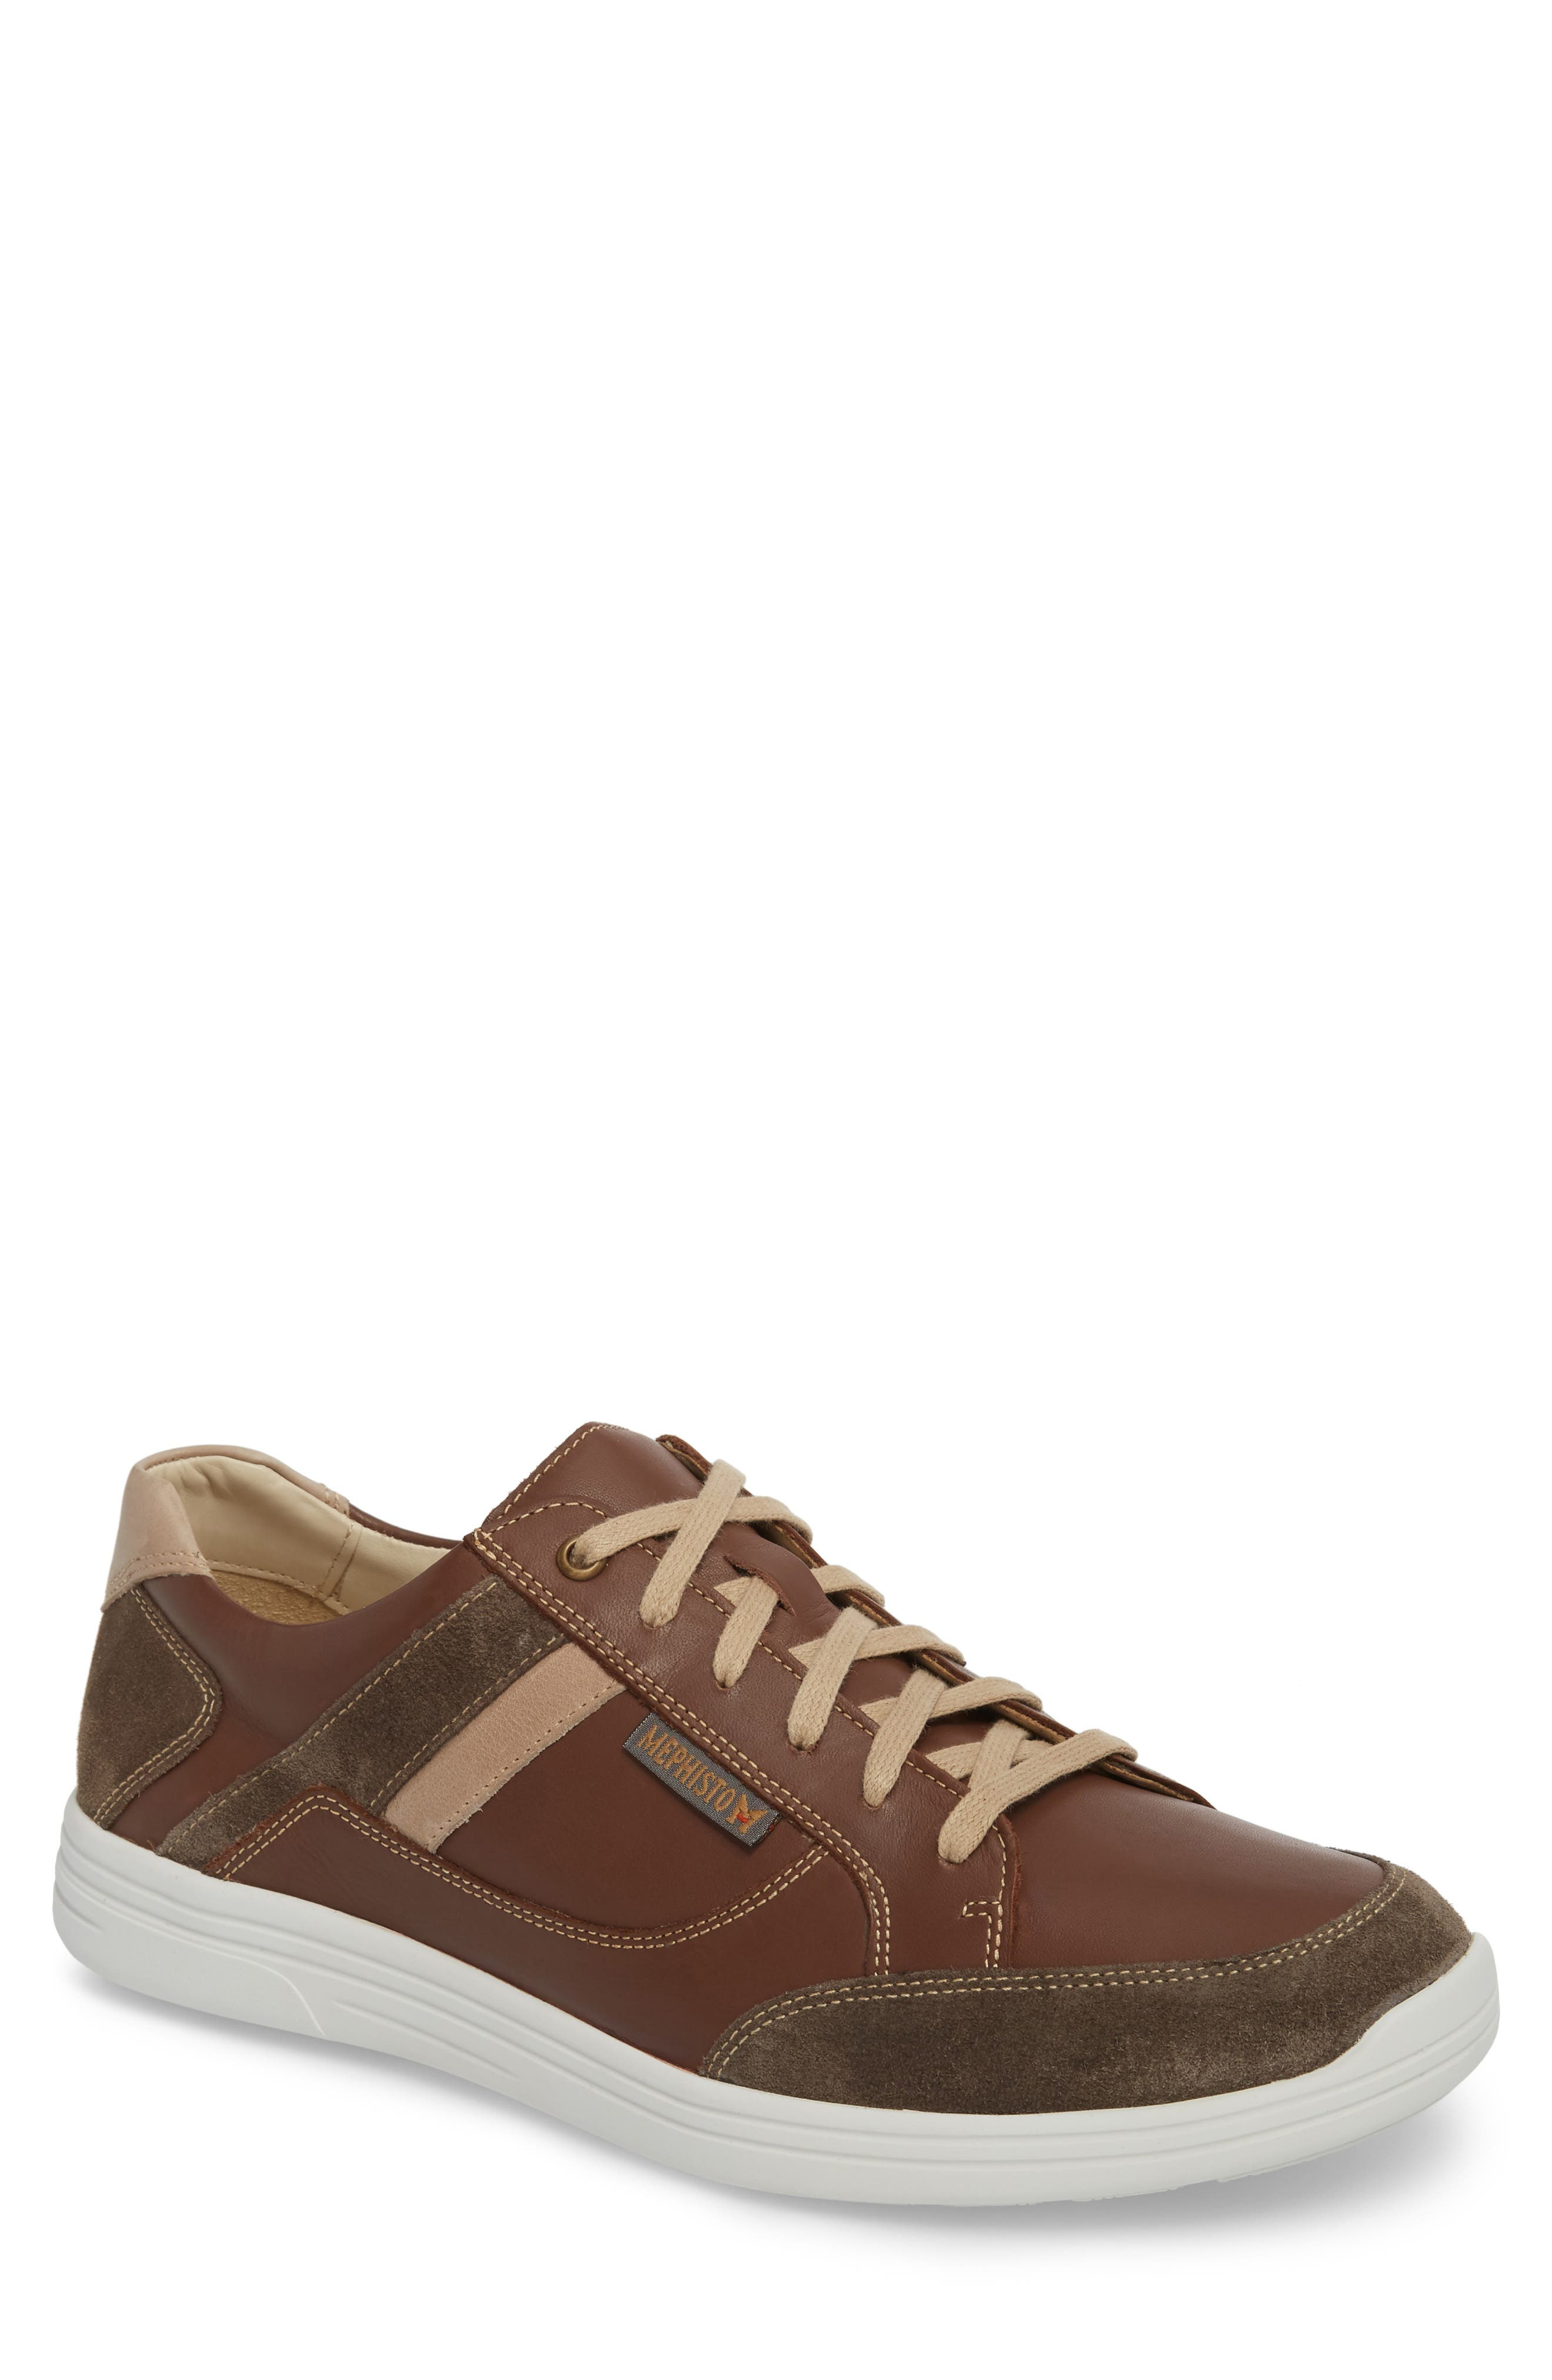 'Frank GoWing' Sneaker,                         Main,                         color, Dark Taupe